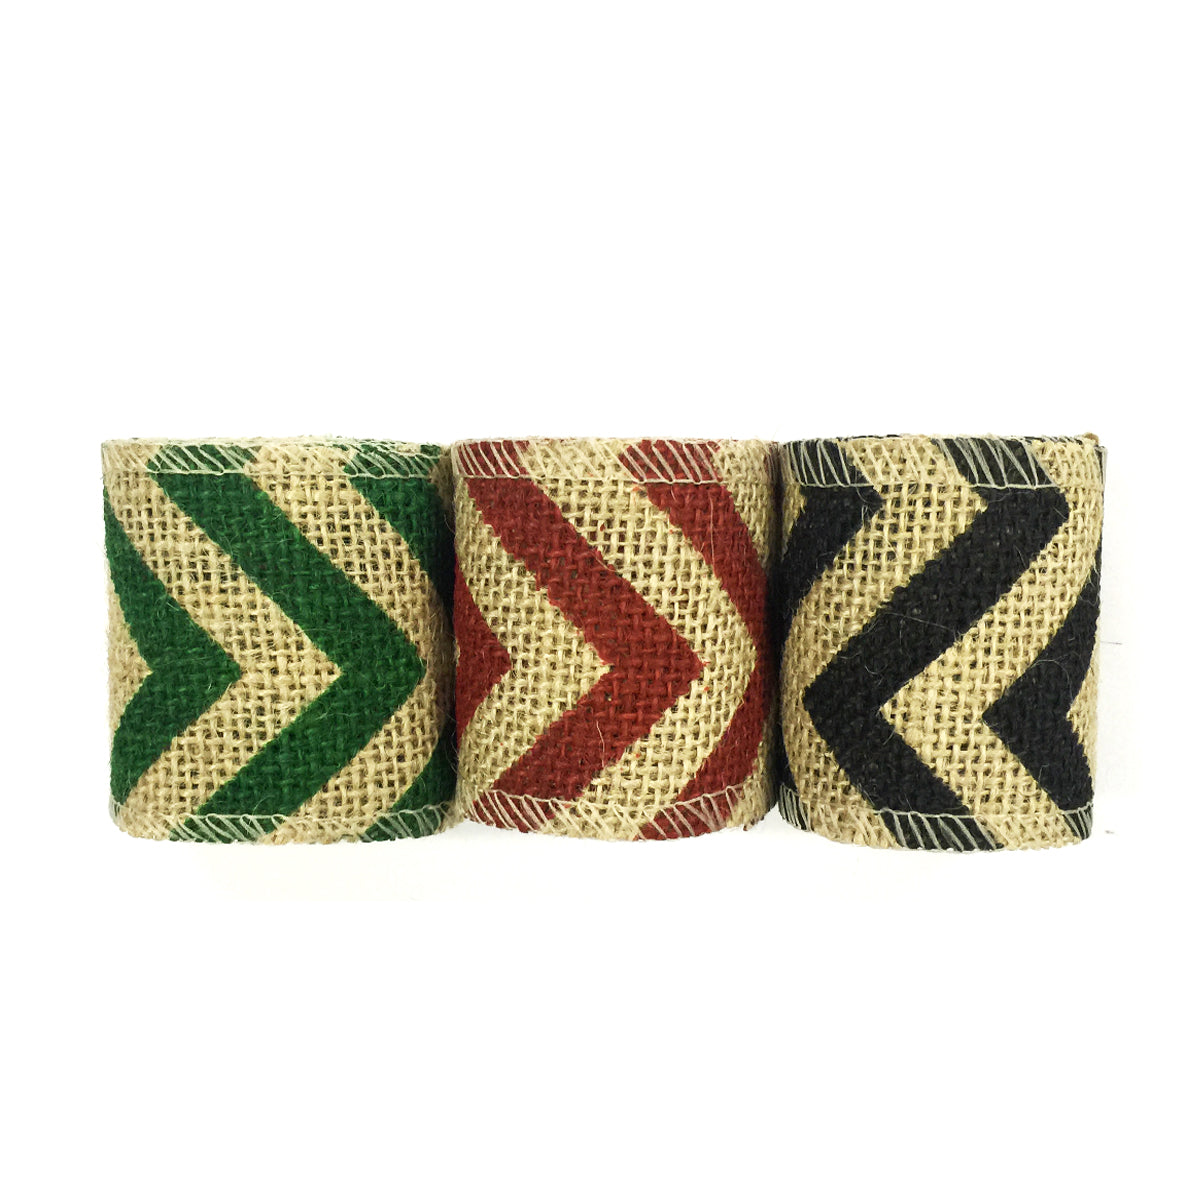 Wrapables Chevron Burlap Ribbon 2.5 Inch Width x 2 Yards Length (Set of 3), Black/Red/Green